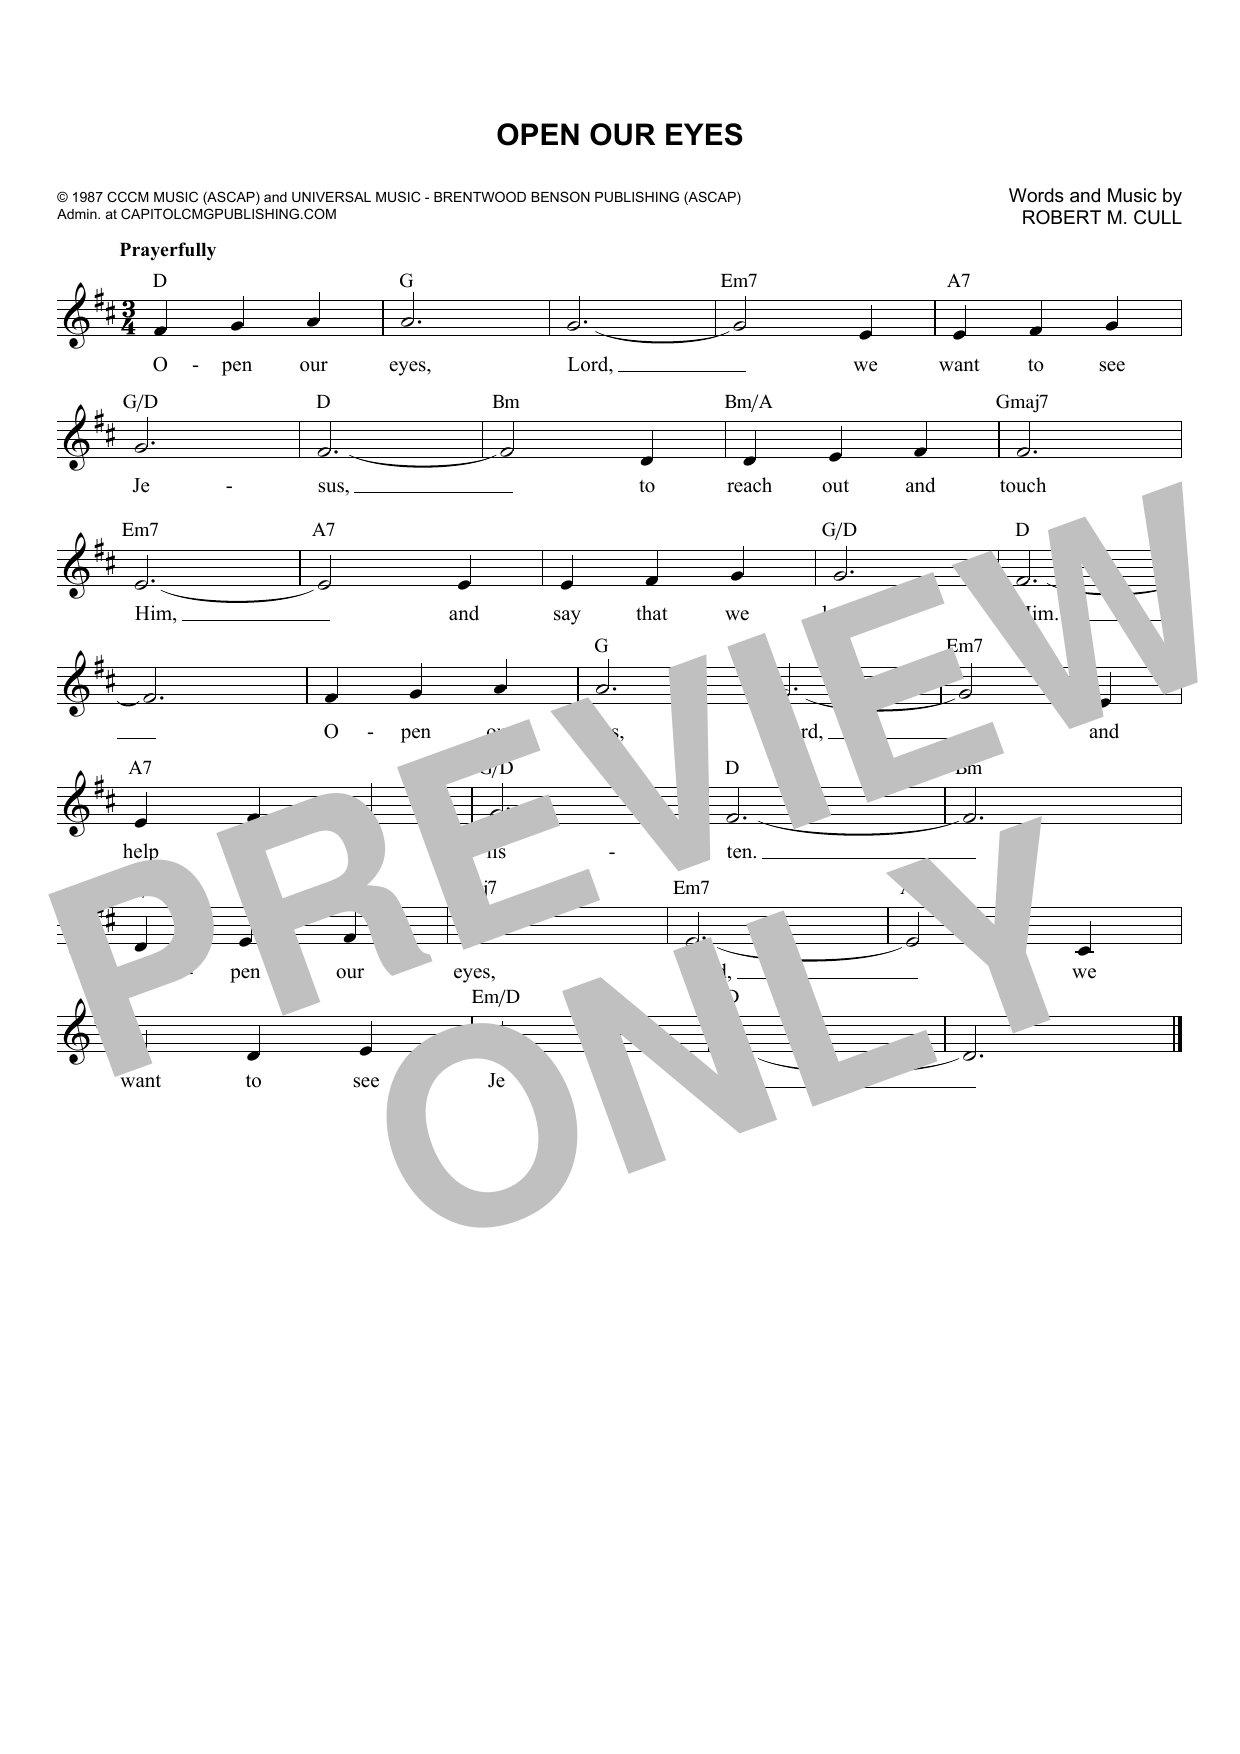 Robert M. Cull Open Our Eyes sheet music notes and chords. Download Printable PDF.